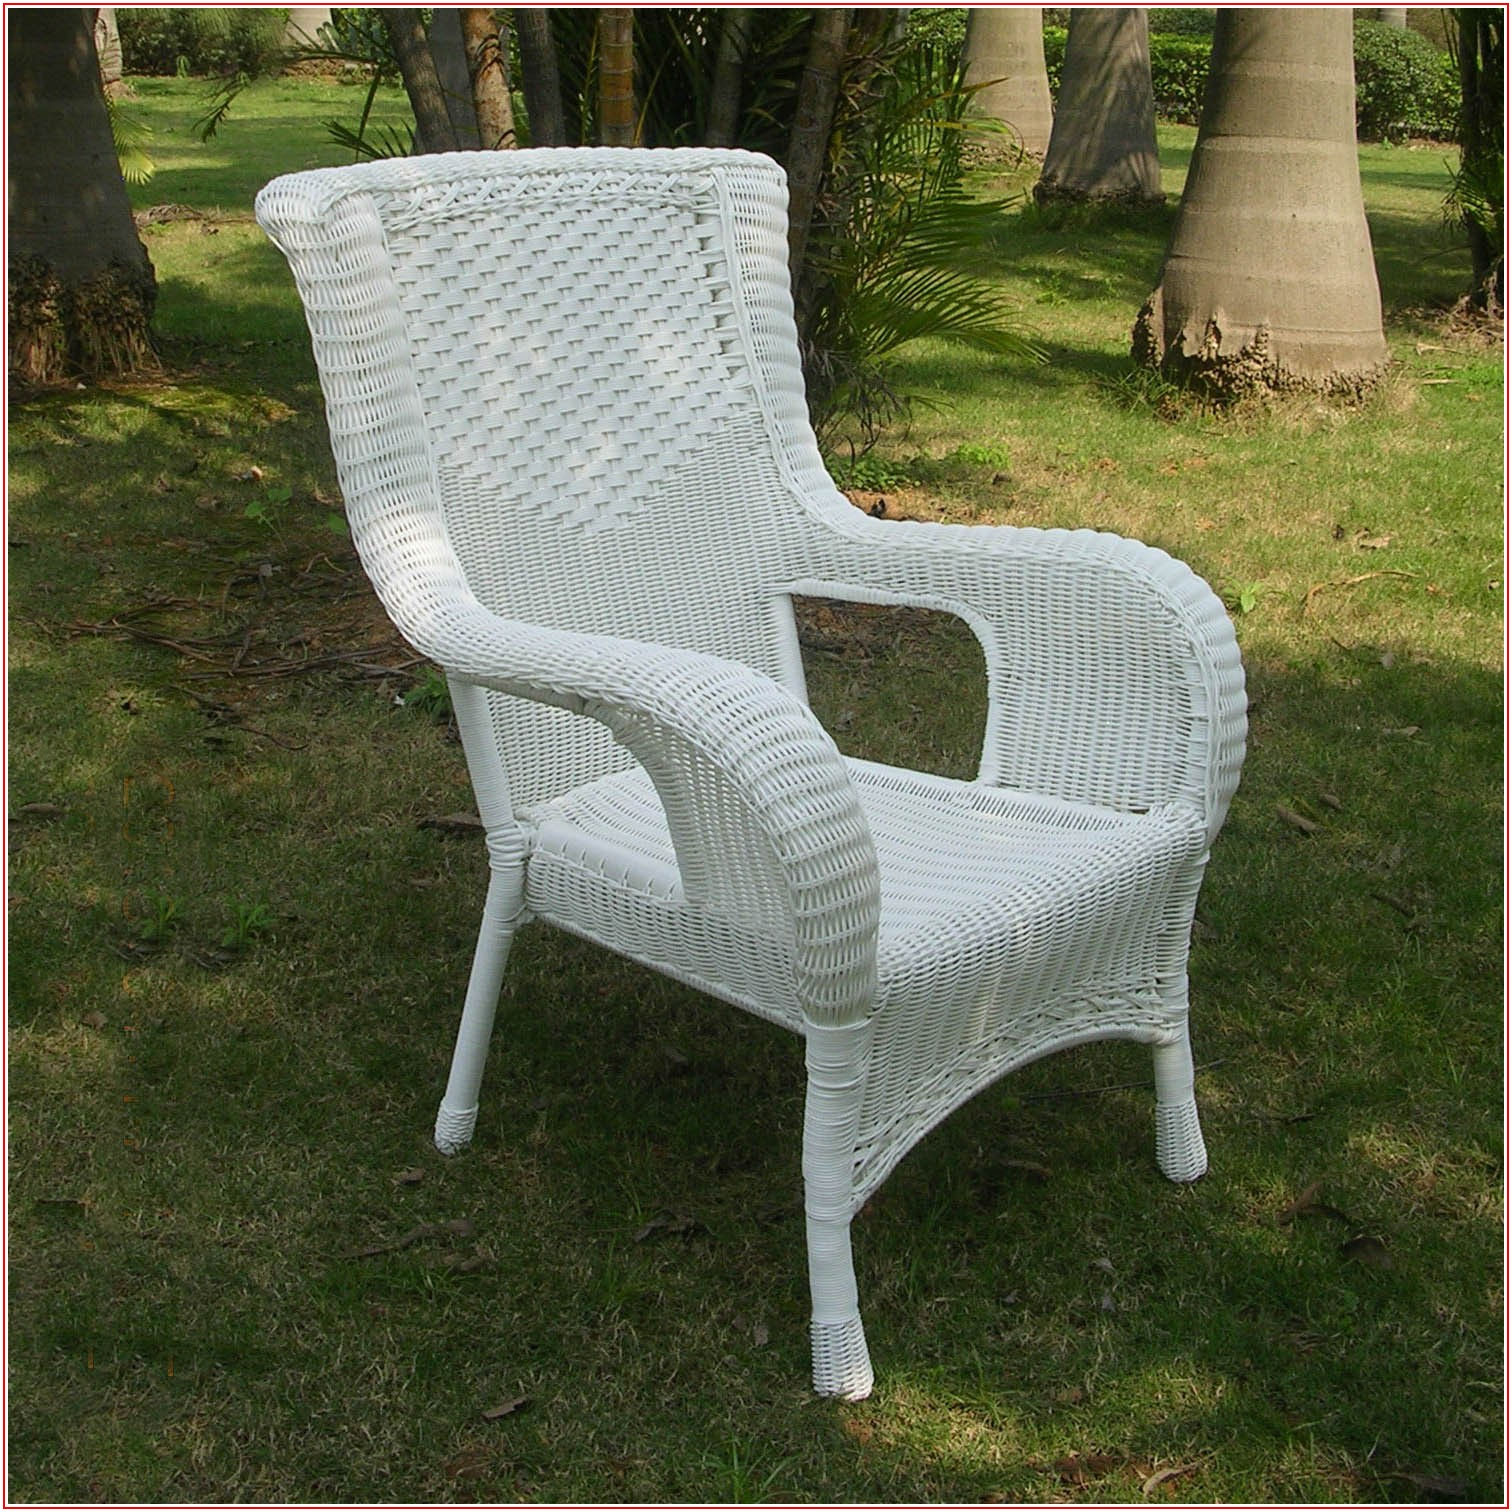 Aluminum Resin Wicker Patio Furniture